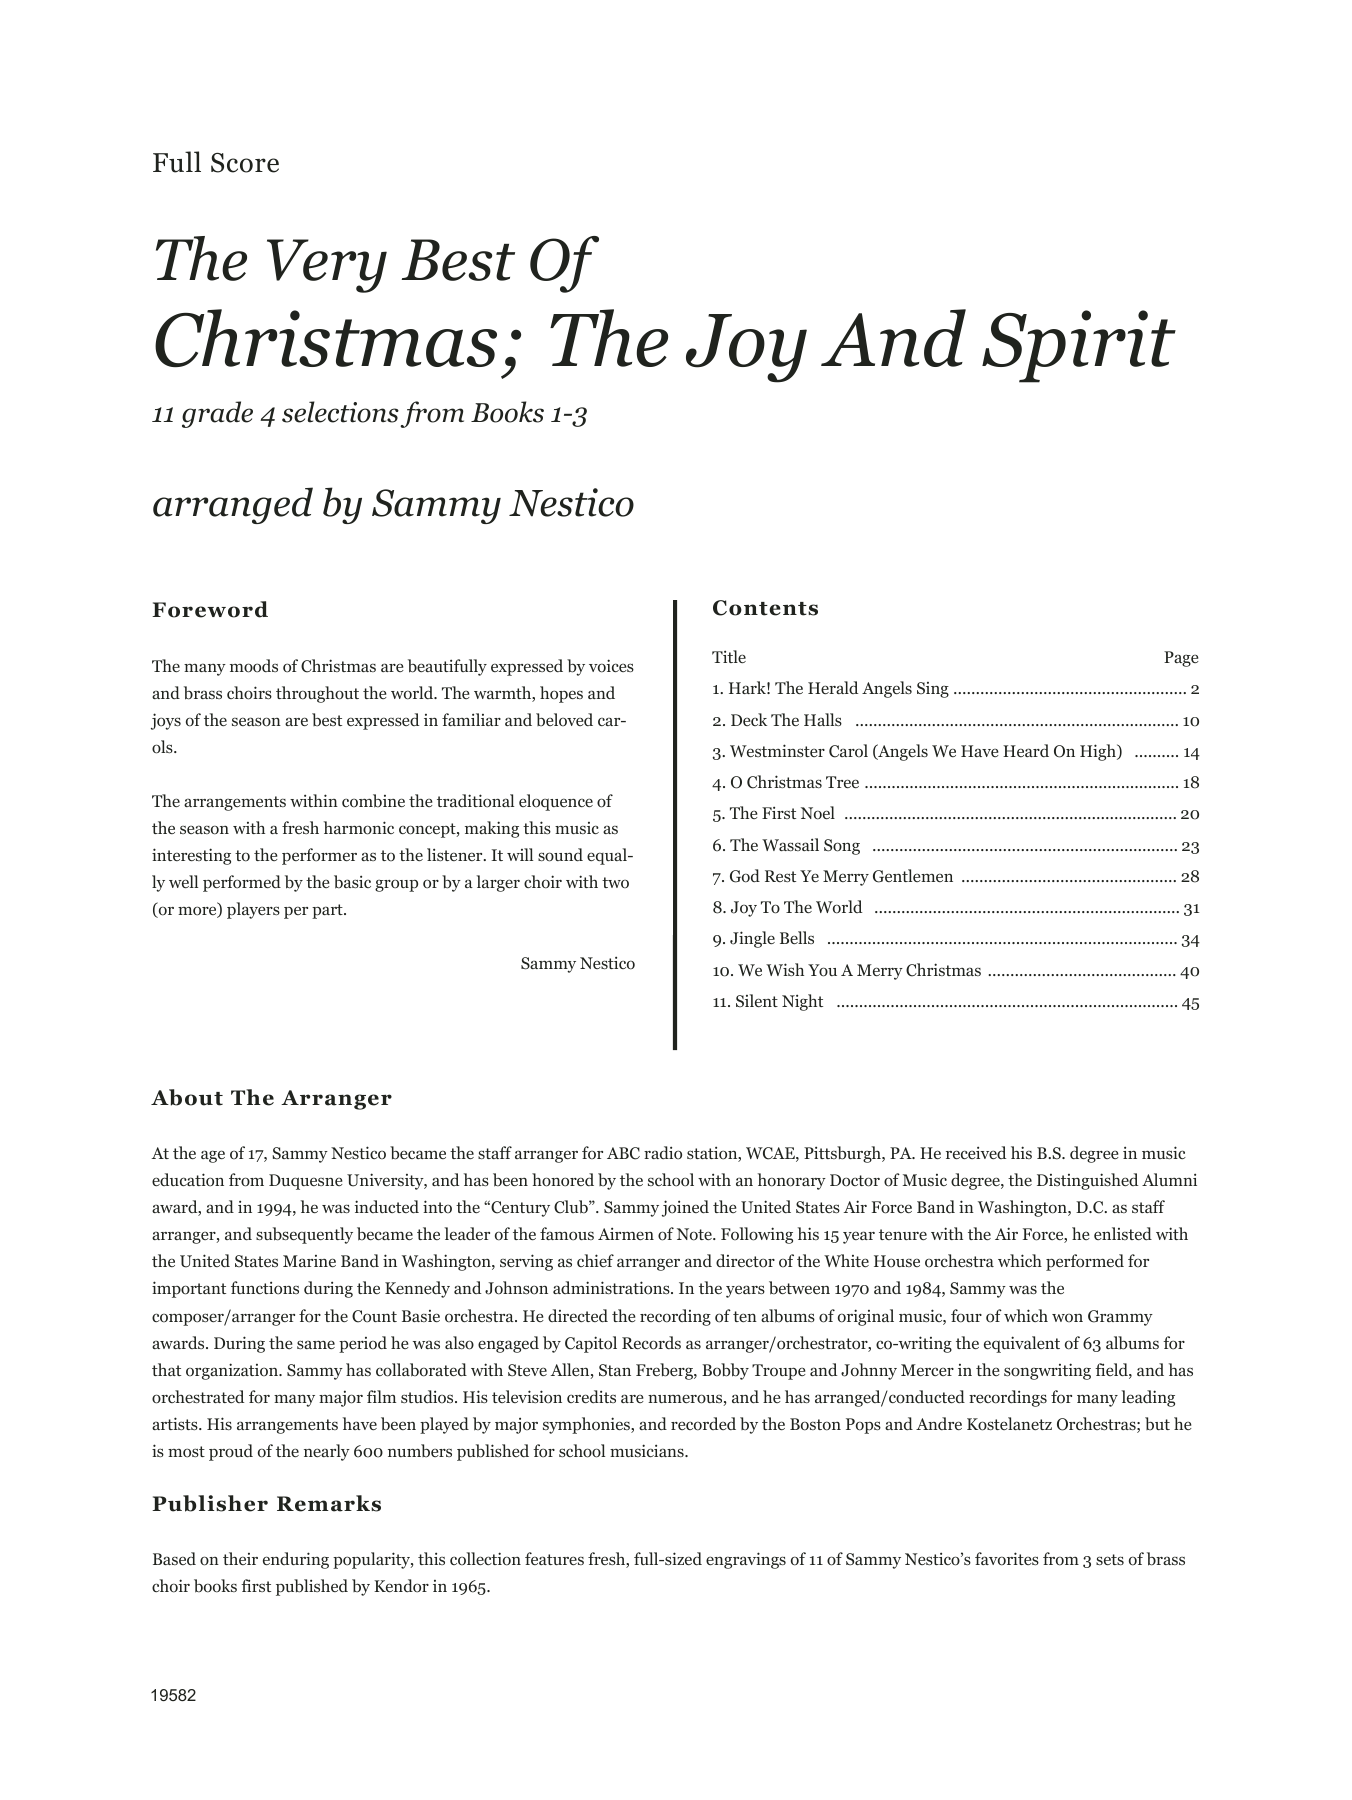 Very Best Of Christmas; The Joy And Spirit (Books 1-3) (COMPLETE) sheet music for brass ensemble by Sammy Nestico. Score Image Preview.